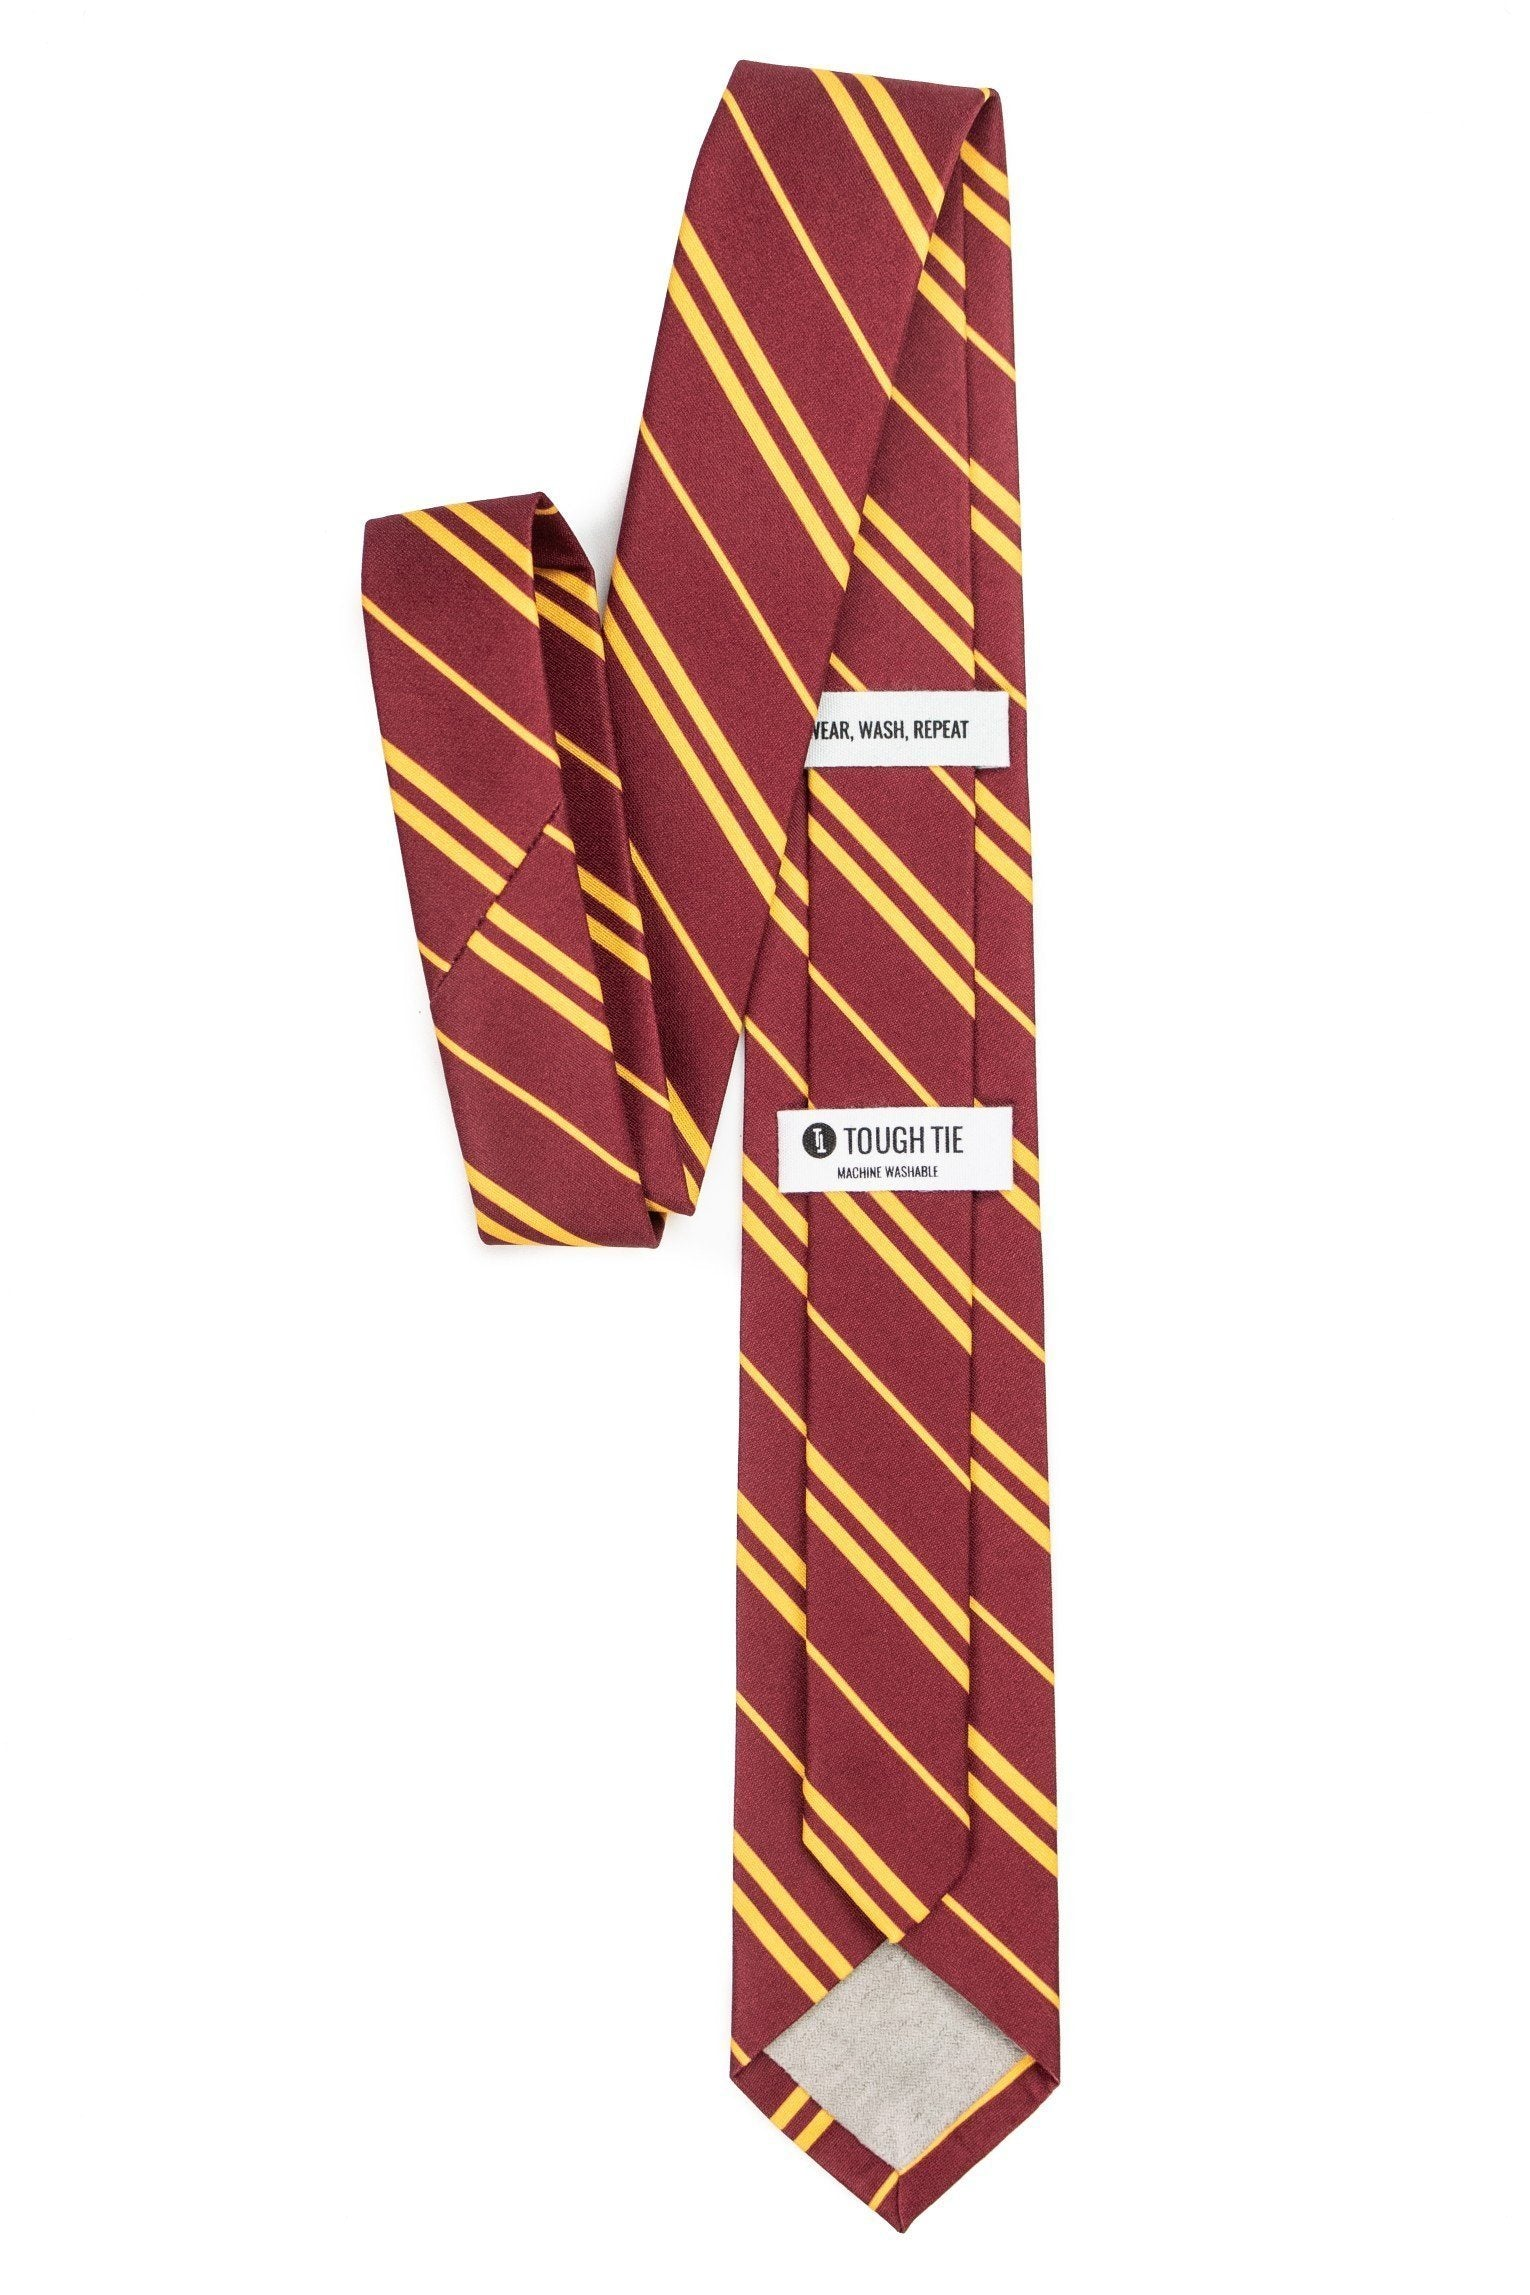 Gryffin's Door - Maroon Tie with Gold Stripes